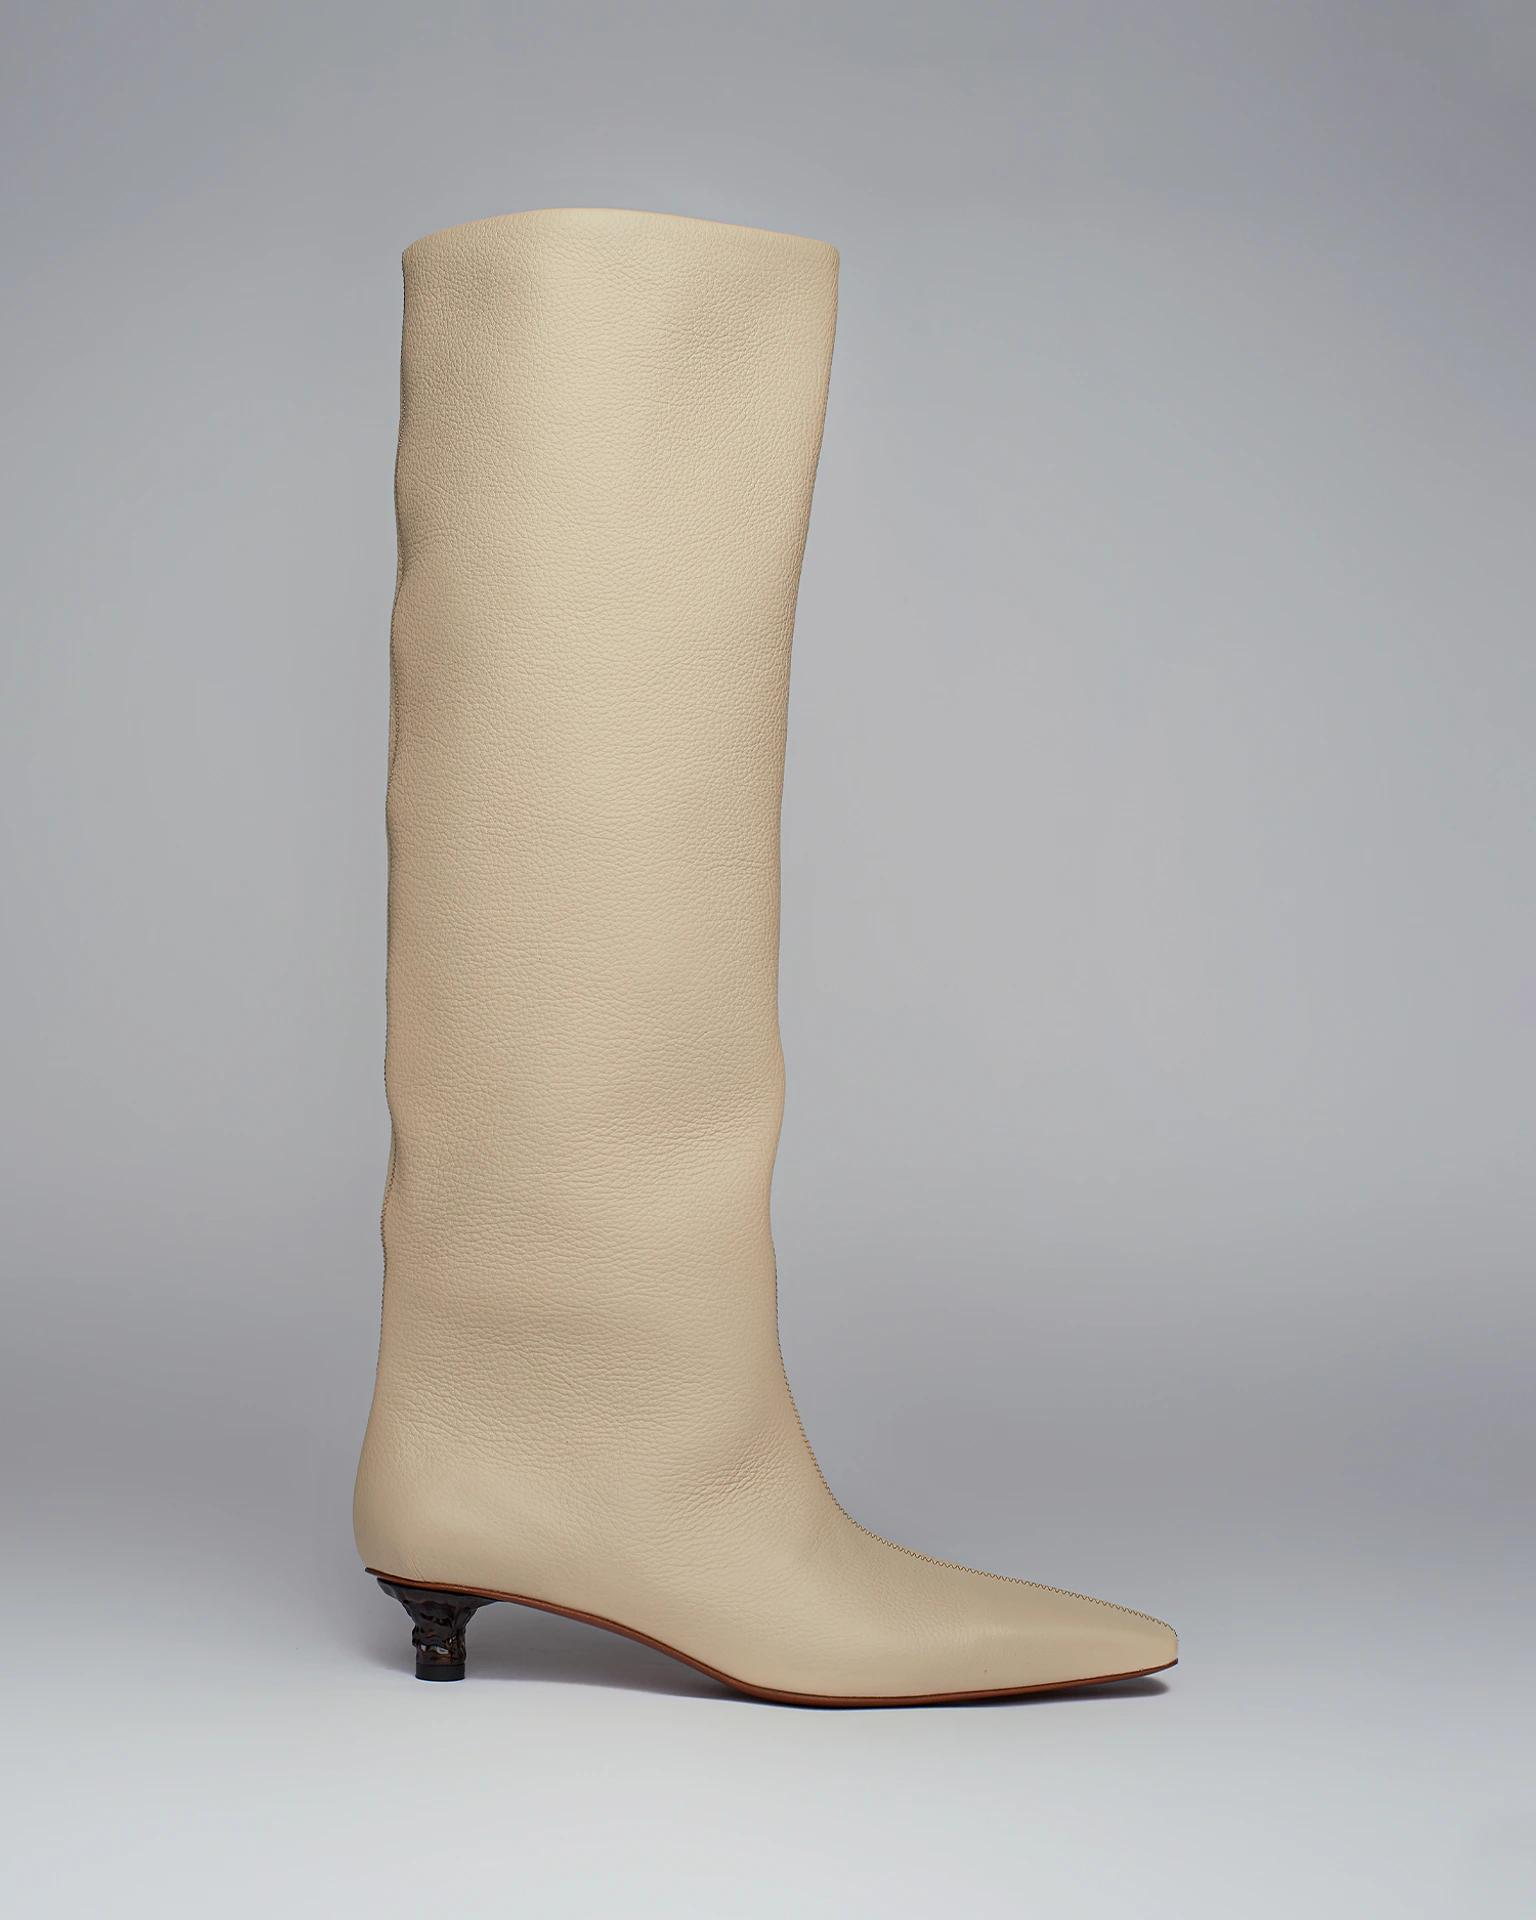 PIPPA - Textured-leather knee boots - Cream